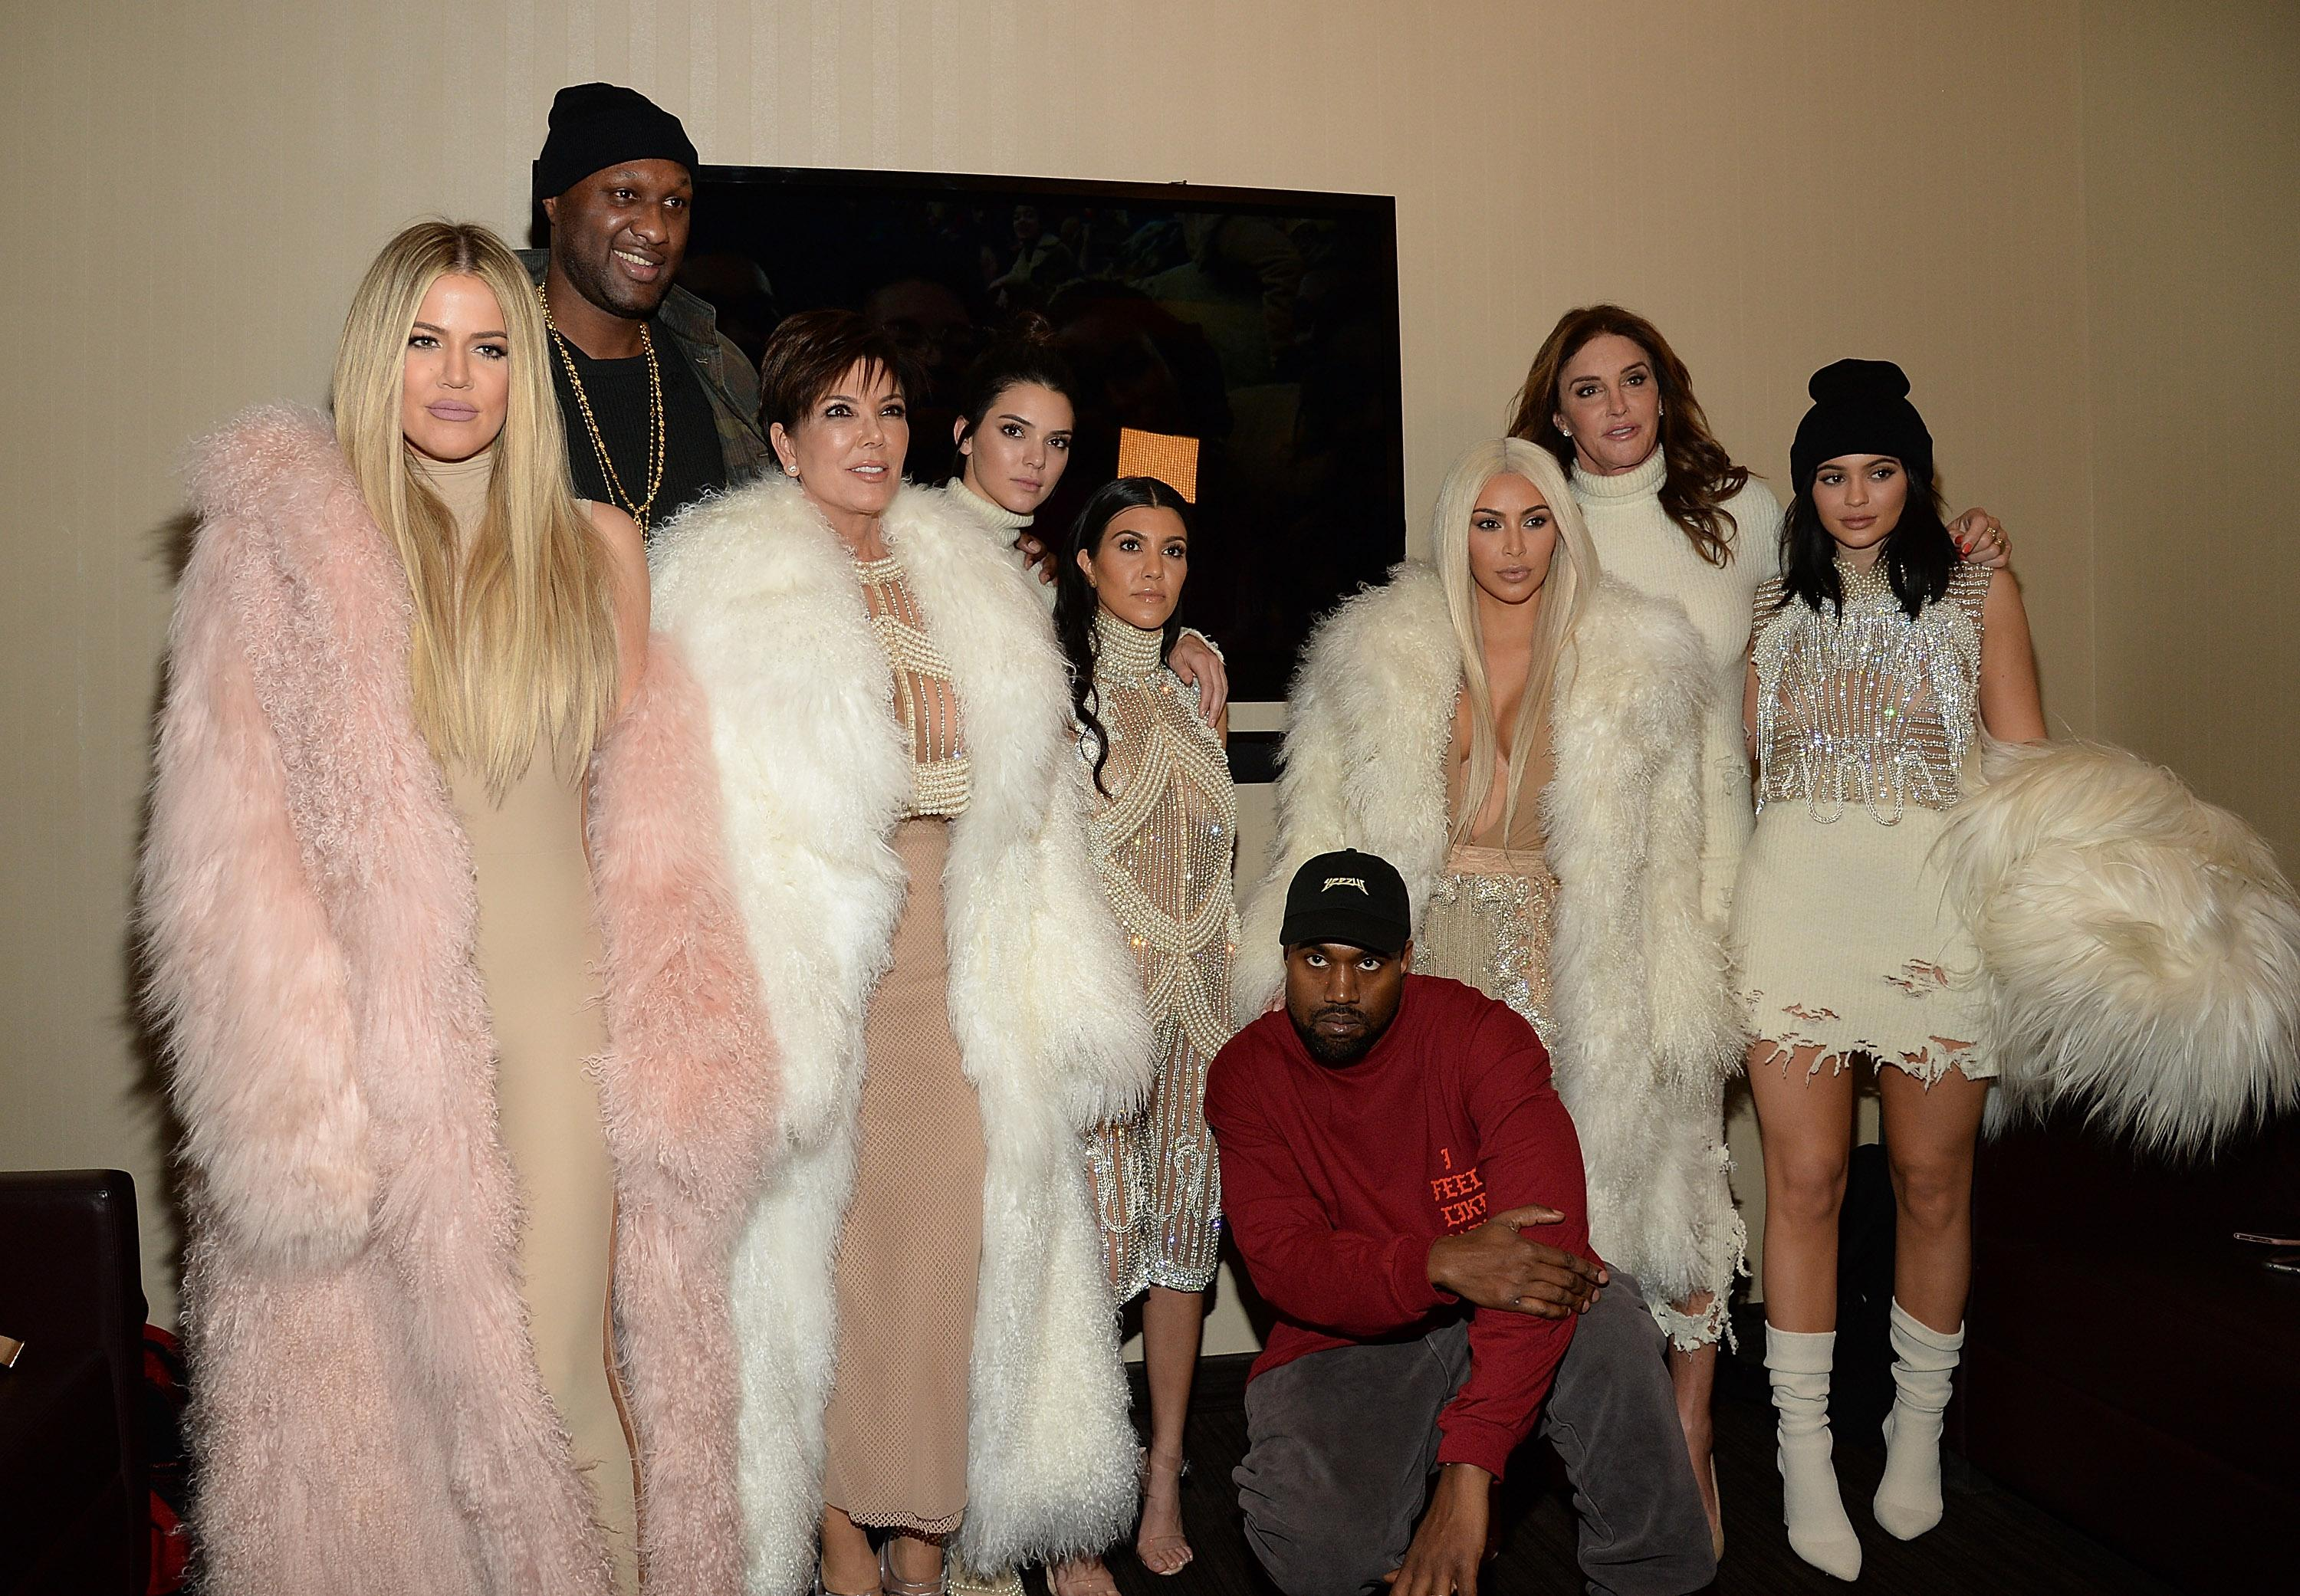 NEW YORK, NY - FEBRUARY 11: Khloe Kardashian, Lamar Odom, Kris Jenner Kendall Jenner, Kourtney Kardashian, Kanye West, Kim Kardashian West, Caitlyn Jenner, Kylie Jenner attend Kanye West Yeezy Season 3 at Madison Square Garden on February 11, 2016 in New York City. (Photo by Kevin Mazur/Getty Images for Yeezy Season 3)